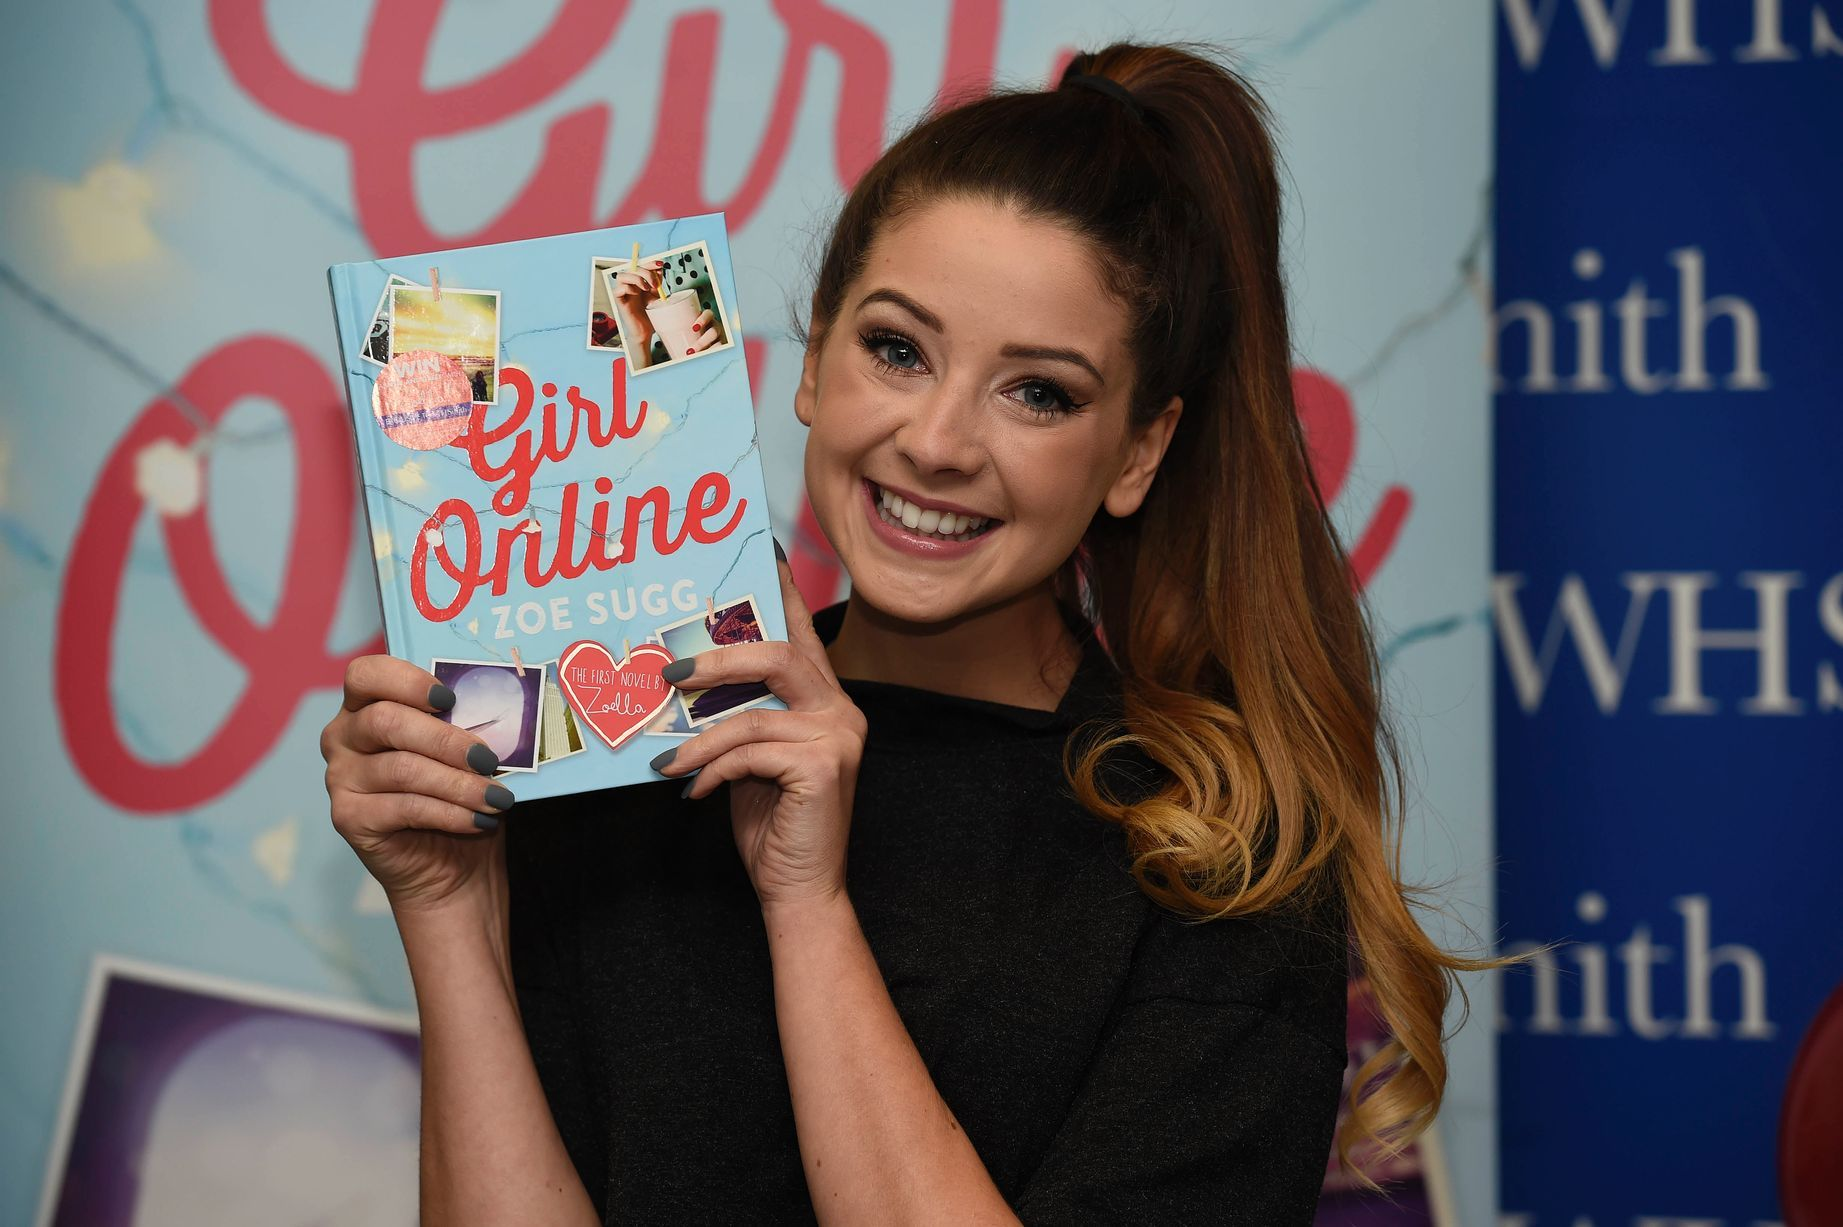 In pictures: Beauty blogger Zoella greeted by excited fans at book ...